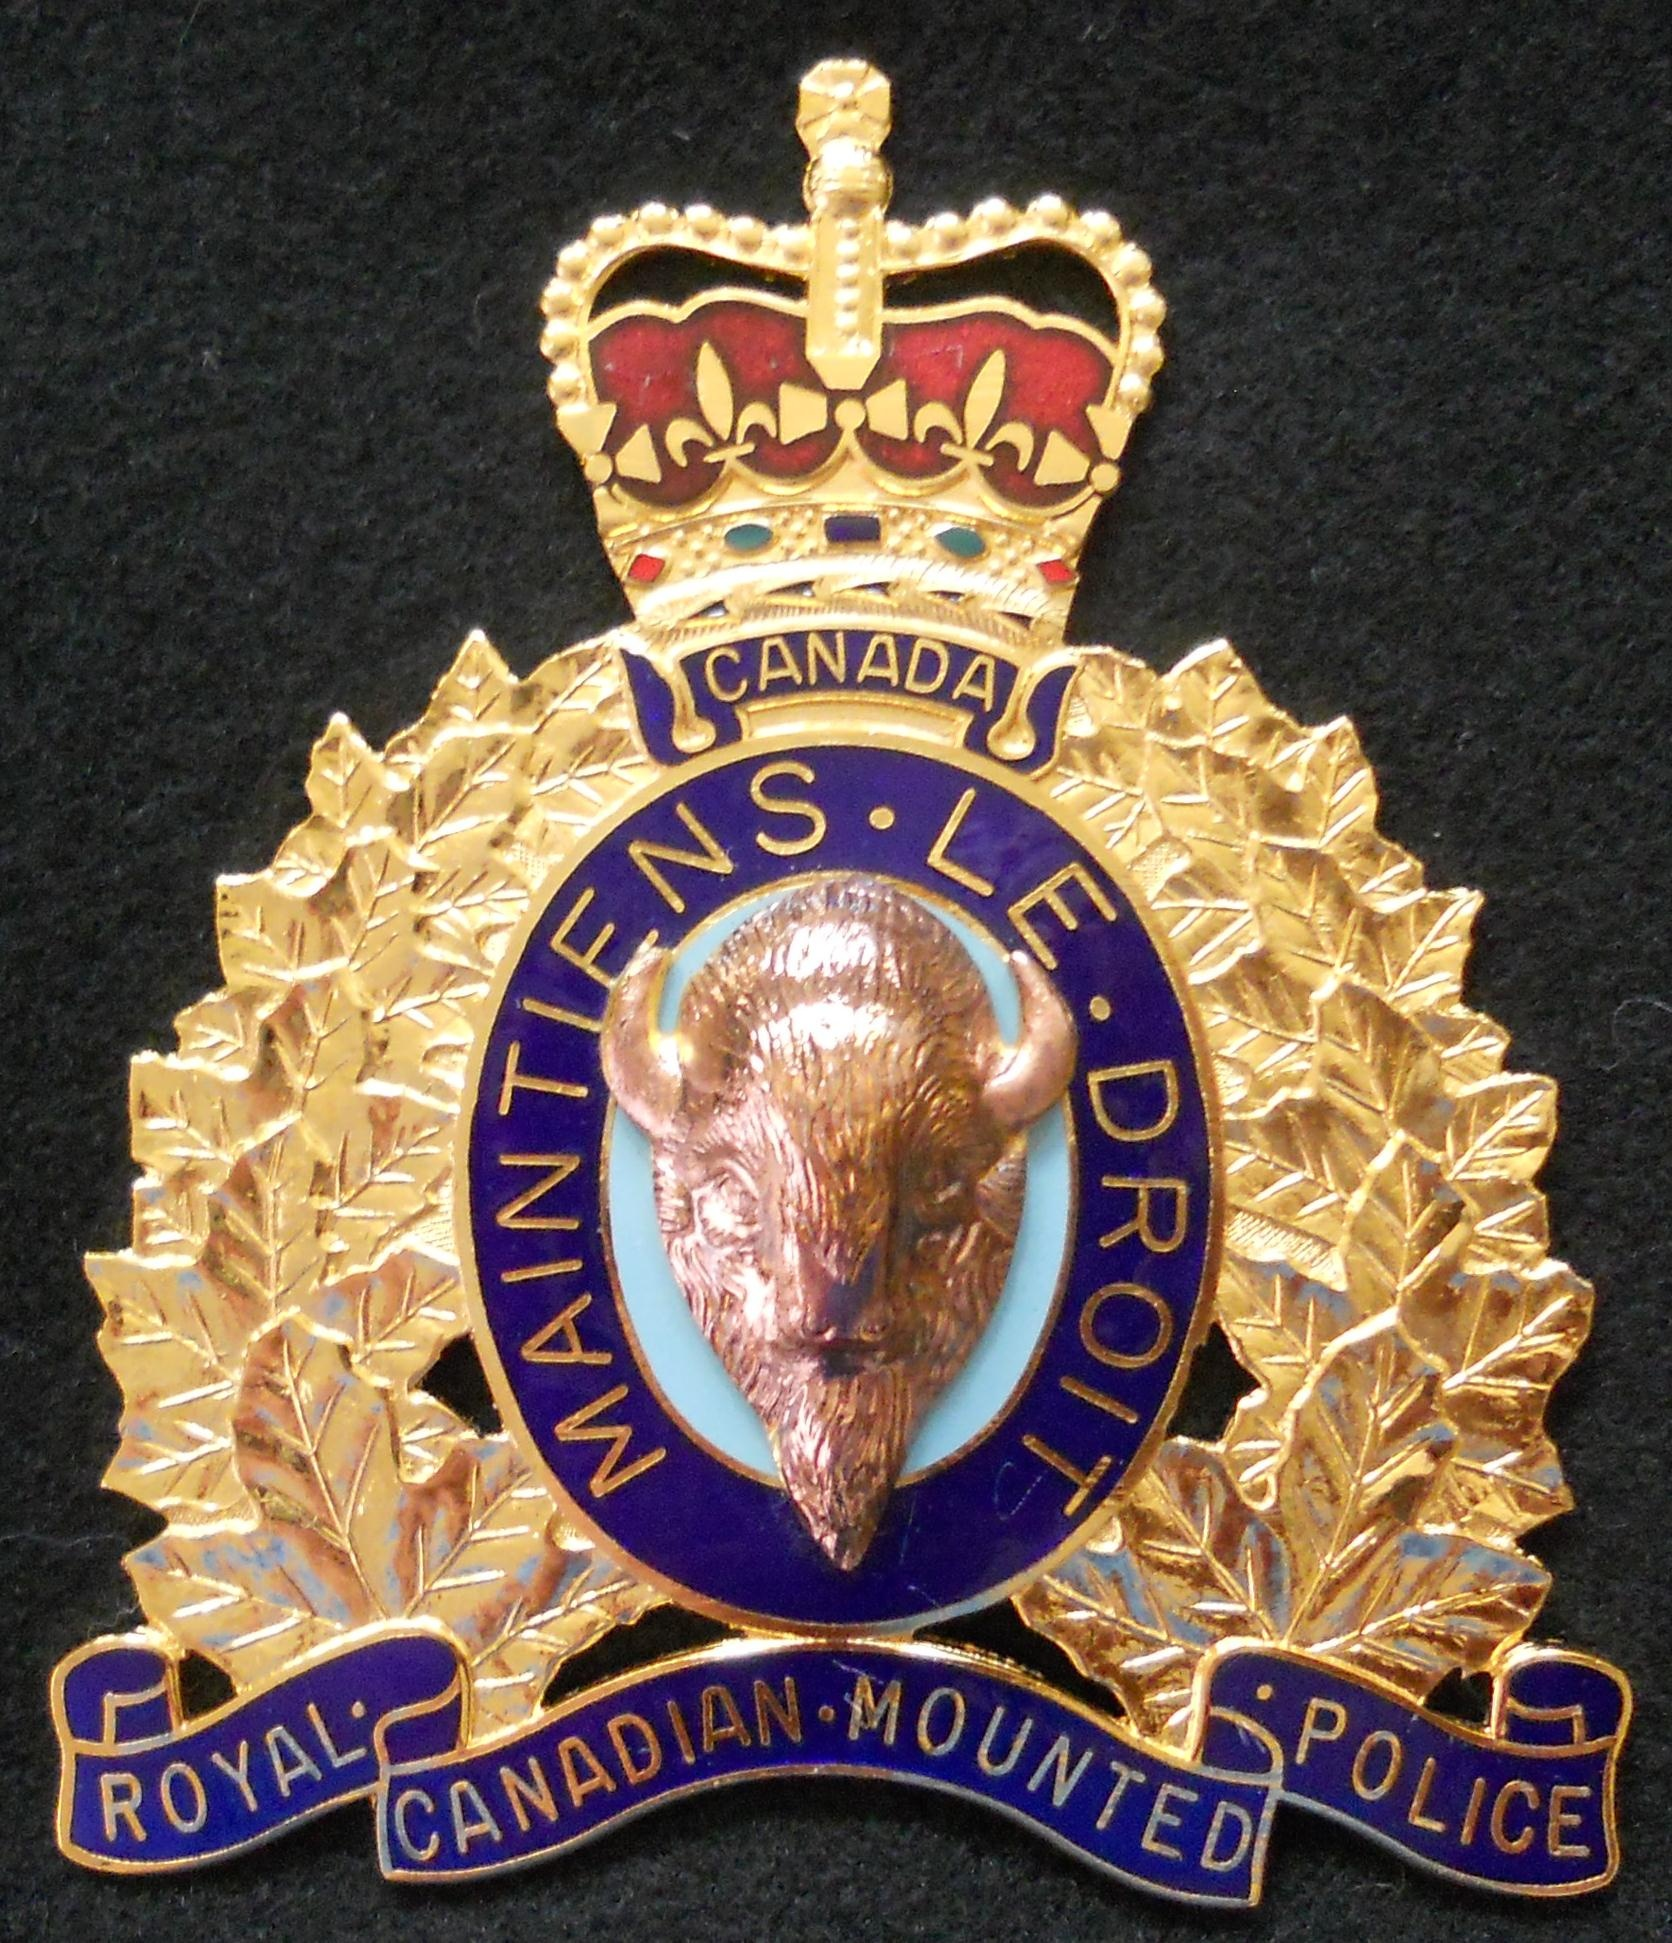 OFFICER HURT IN DRAGGING INCIDENT IN EDSON